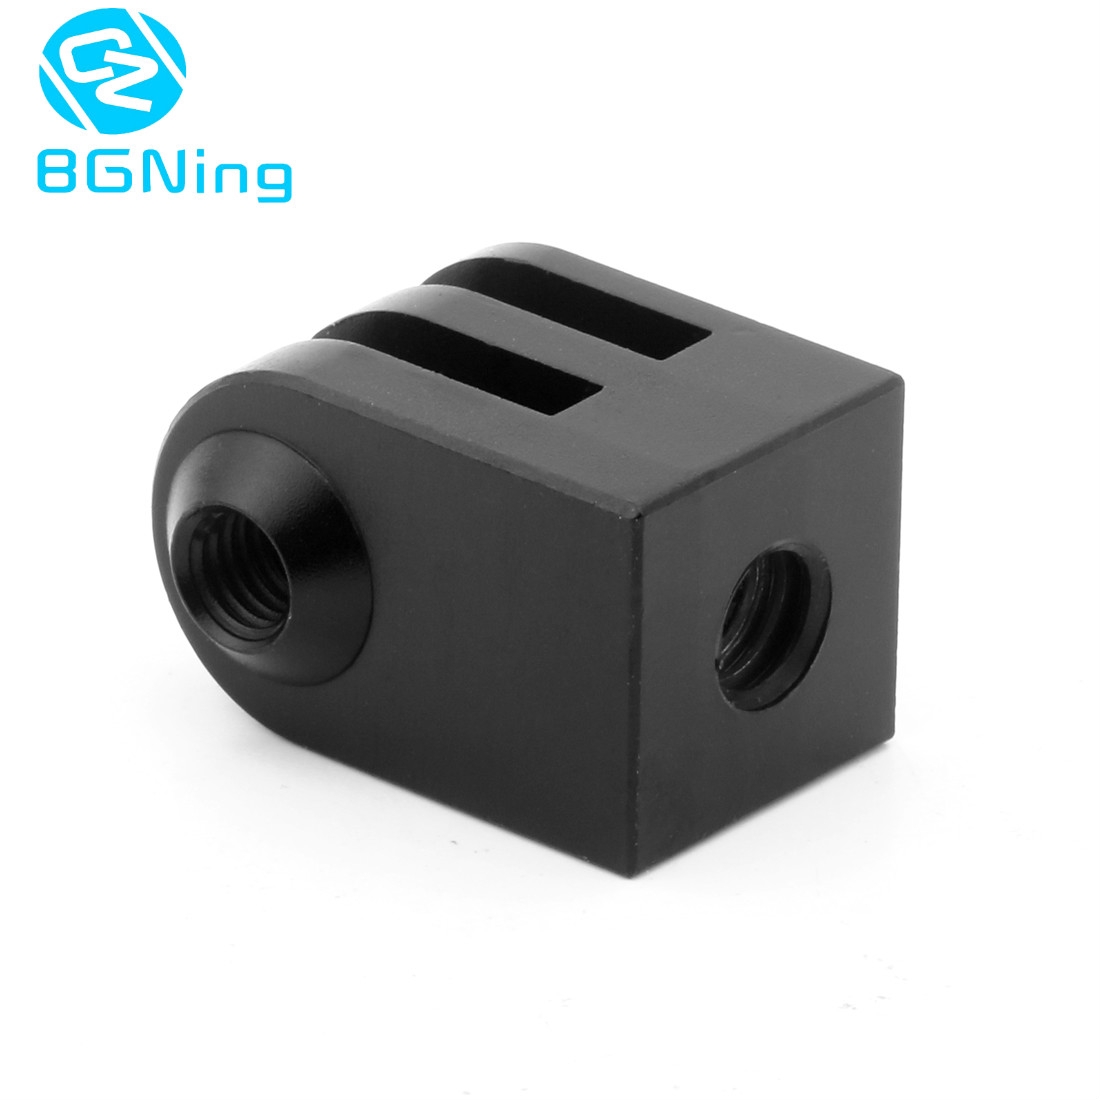 BGNING CNC Aluminum Alloy Mini <font><b>Tripod</b></font> <font><b>Mount</b></font> Outdoor Sports Camera Base <font><b>Adapter</b></font> for GoPro SupTig All <font><b>1/4</b></font>